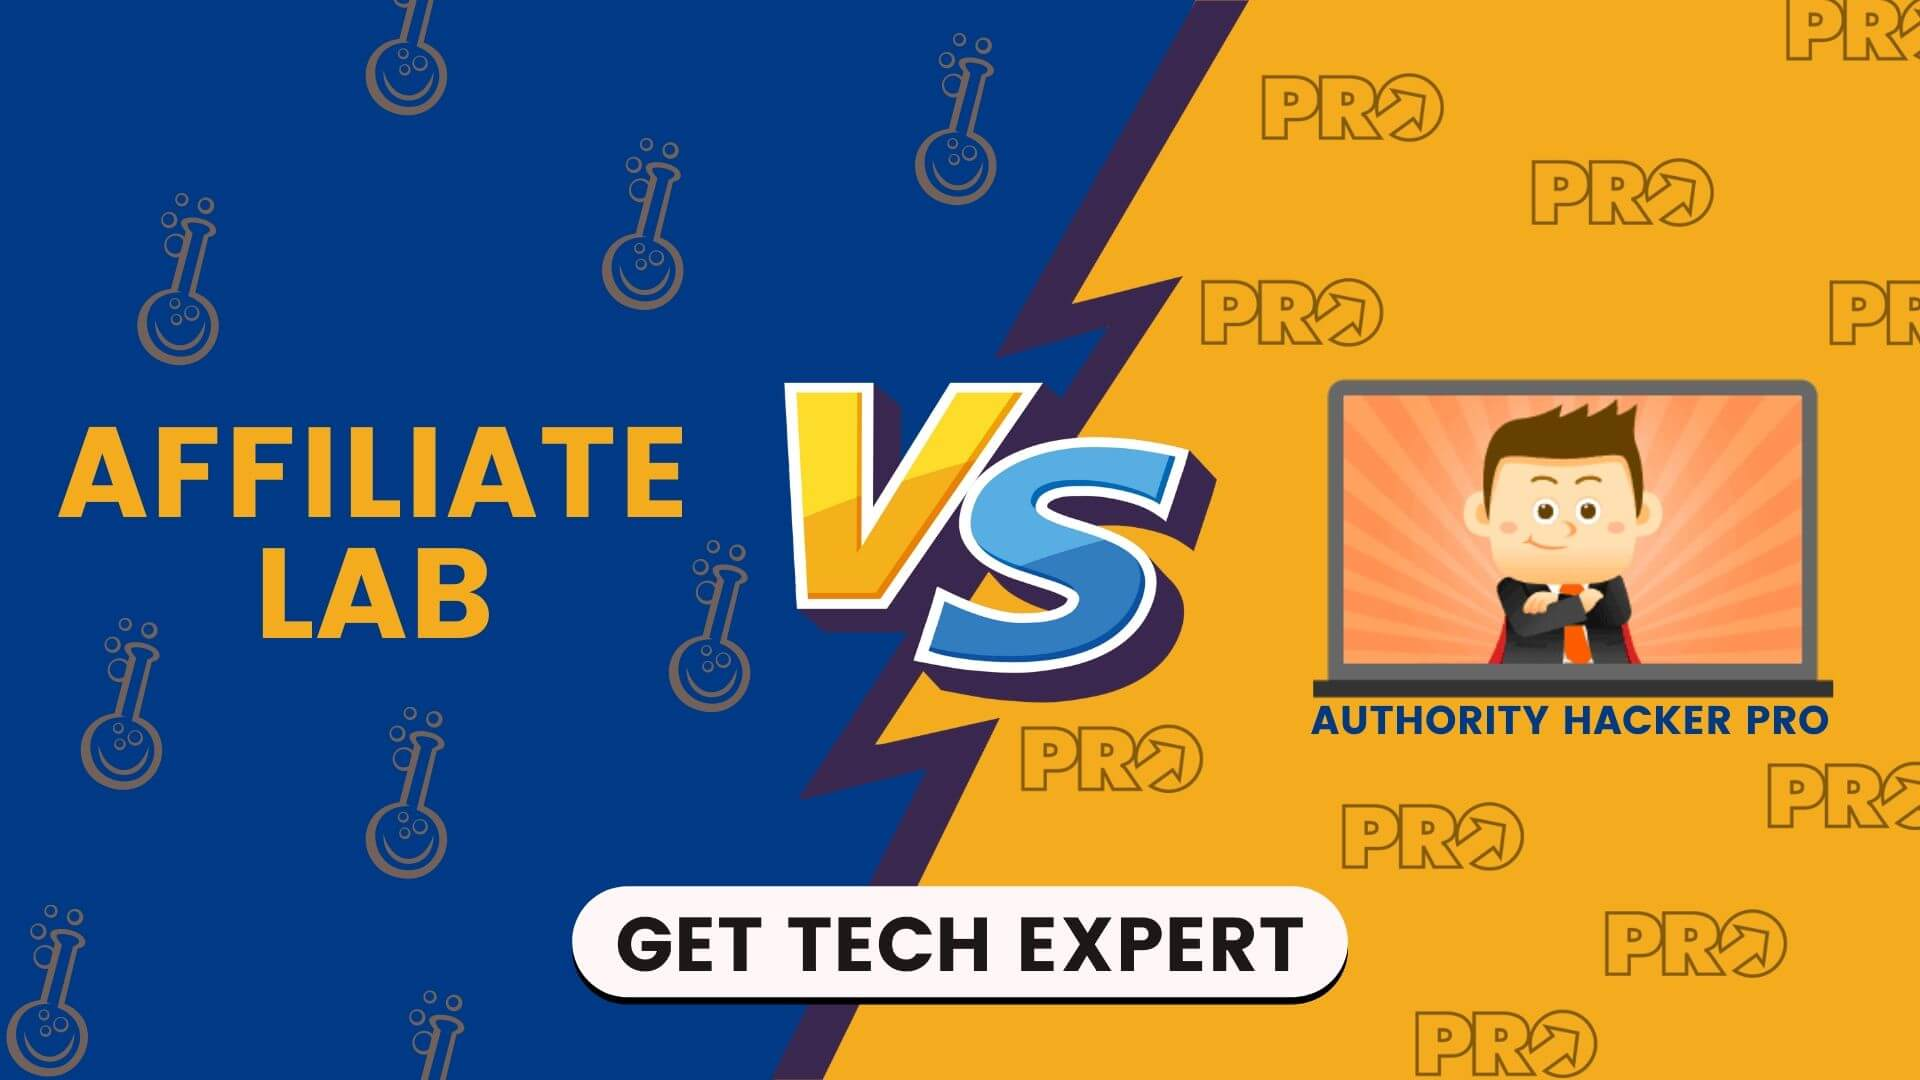 Affiliate Lab vs Authority Hacker Pro, Which One Should You Buy?